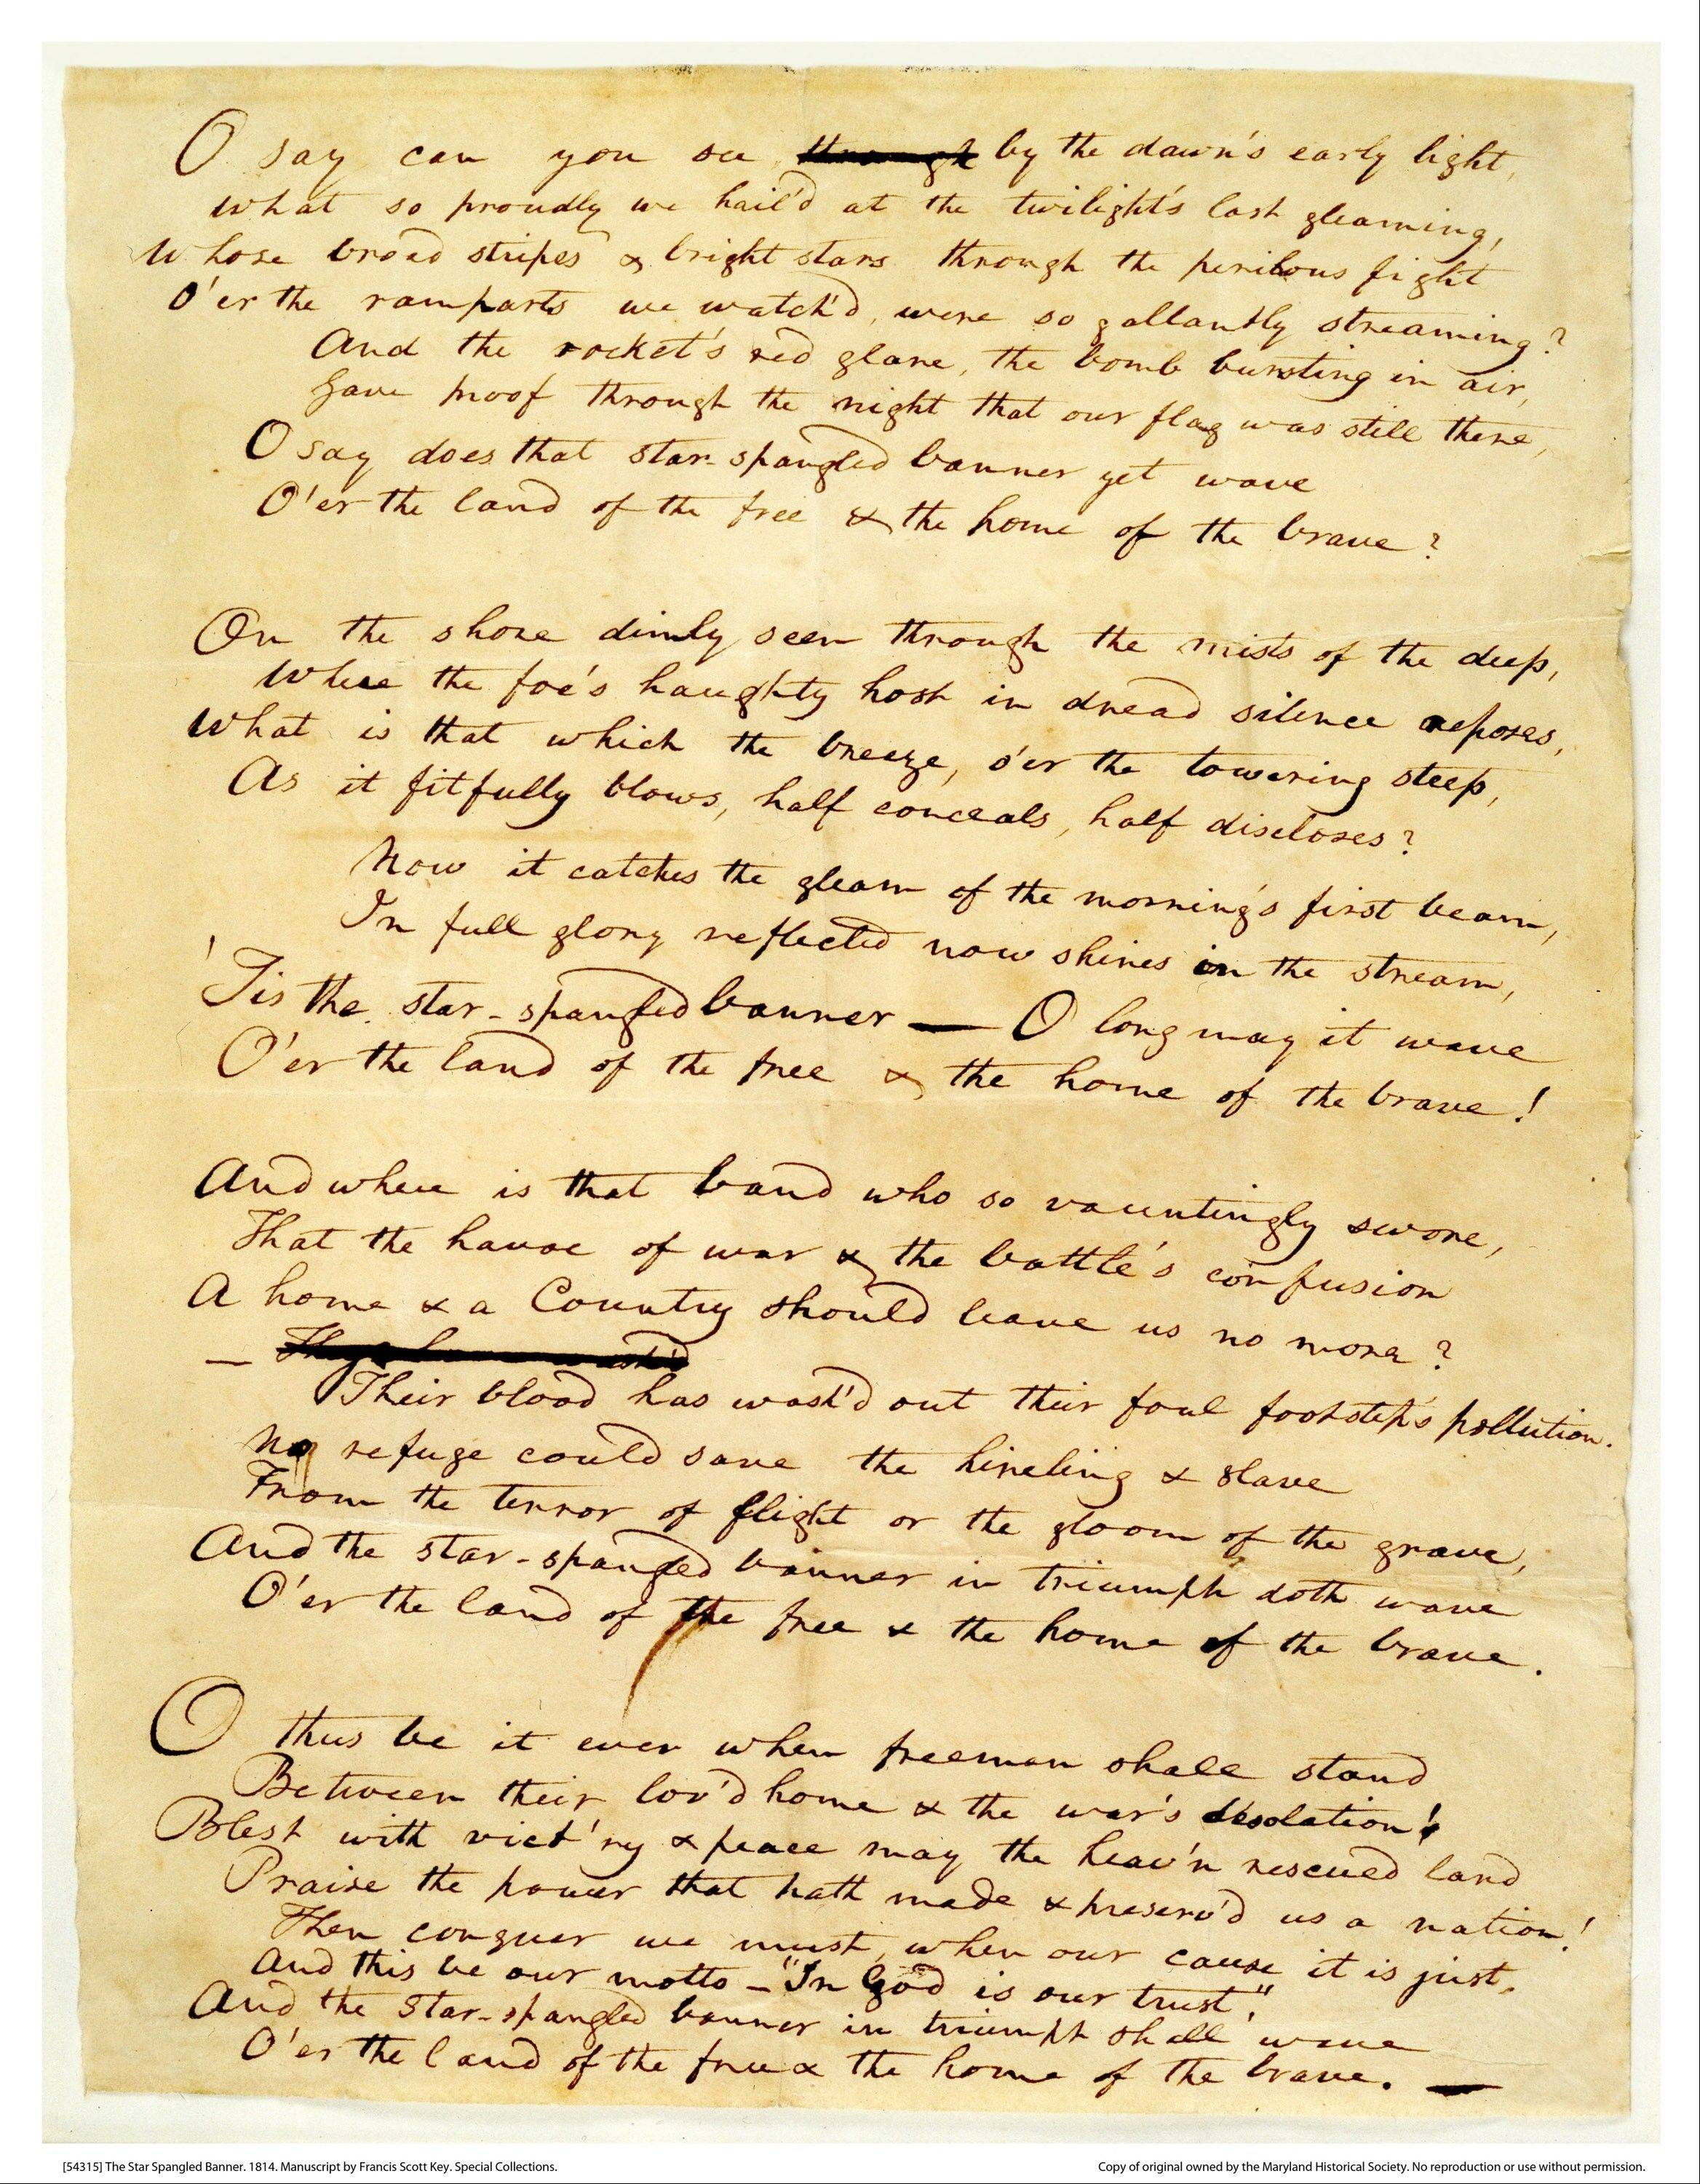 The 1814 Star-Spangled Banner manuscript by Francis Scott Key. The original, handwritten manuscript of �The Star-Spangled Banner� and the flag that inspired the song�s lyrics will be displayed together at the Smithsonian in Washington, what is believed to be the first time the historic pieces have been shown side-by-side, on Flag Day, June 14, through July 6.